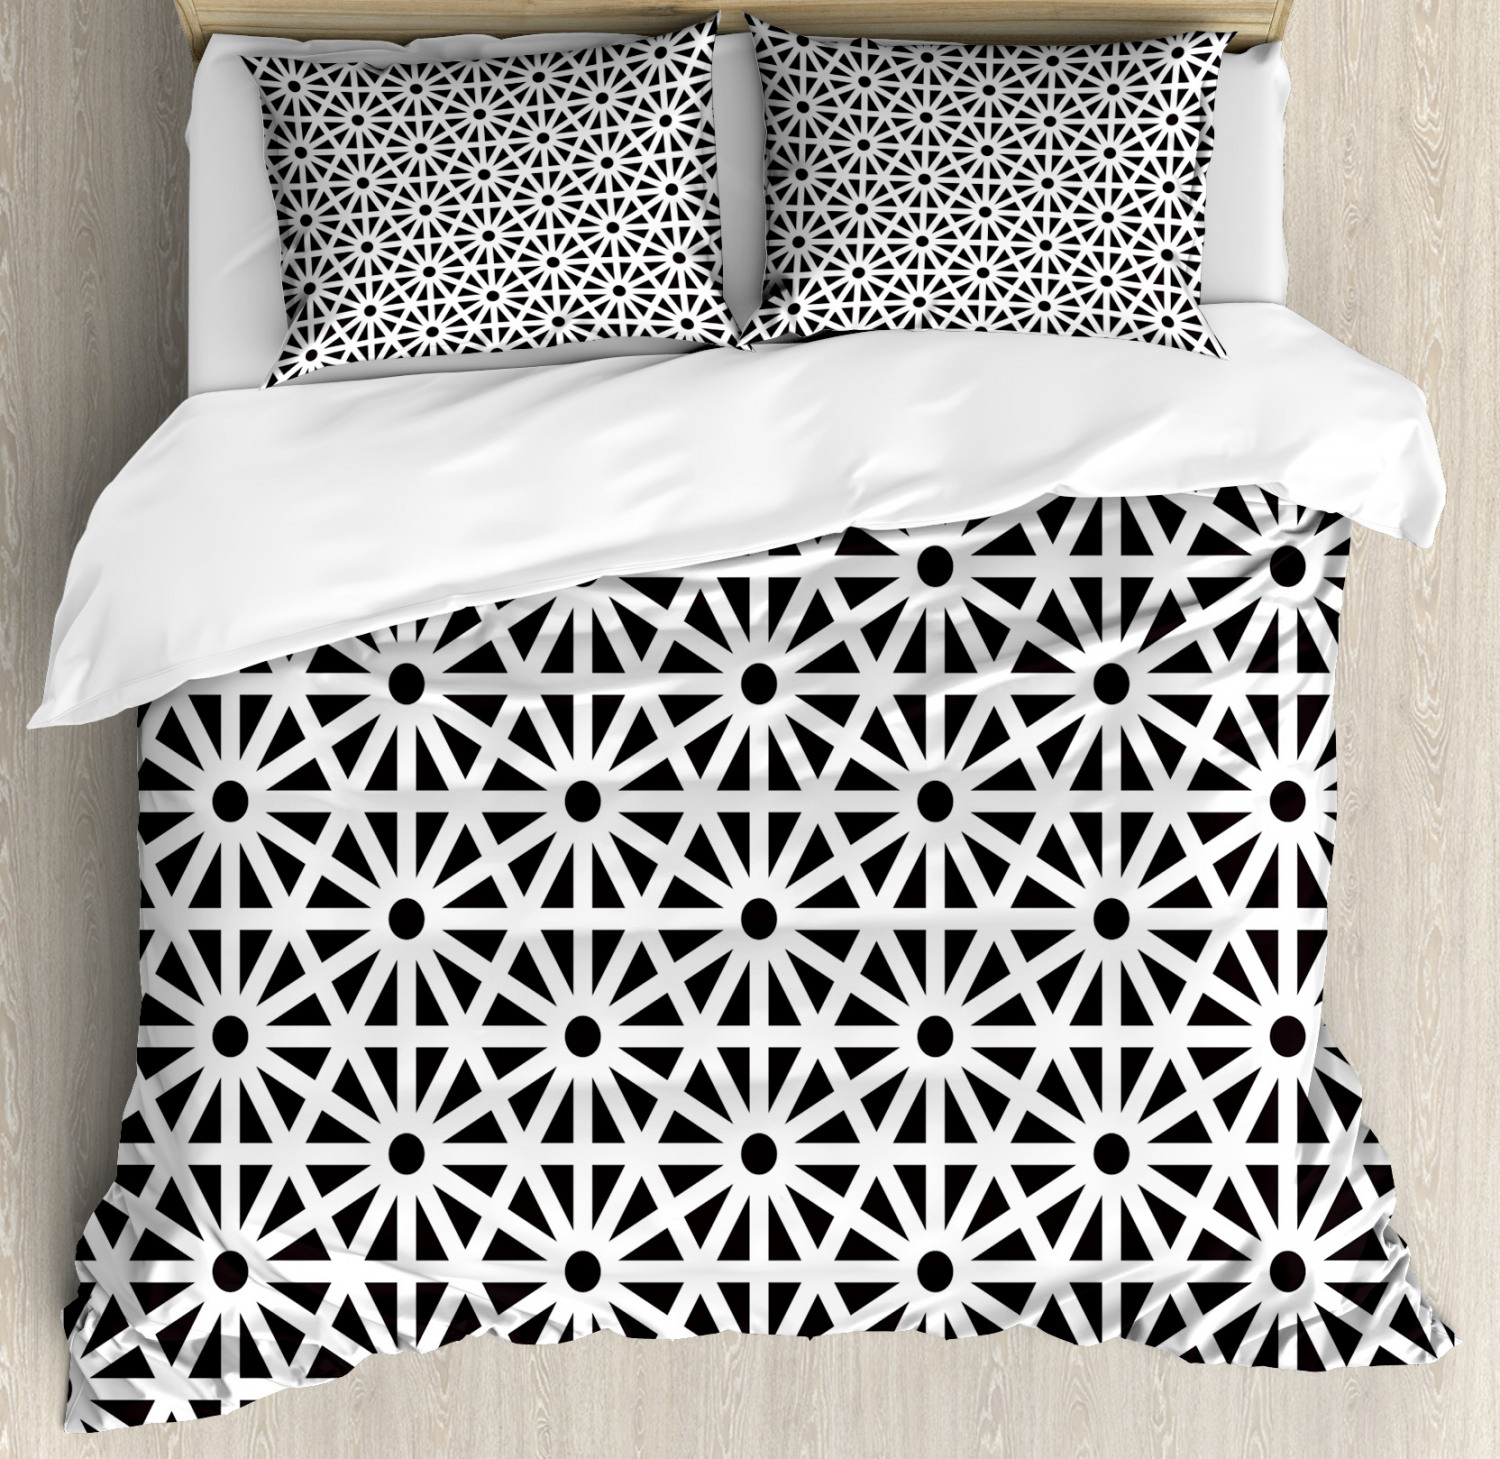 Moroccan Duvet Cover Set with Pillow Shams Authentic Old Mot